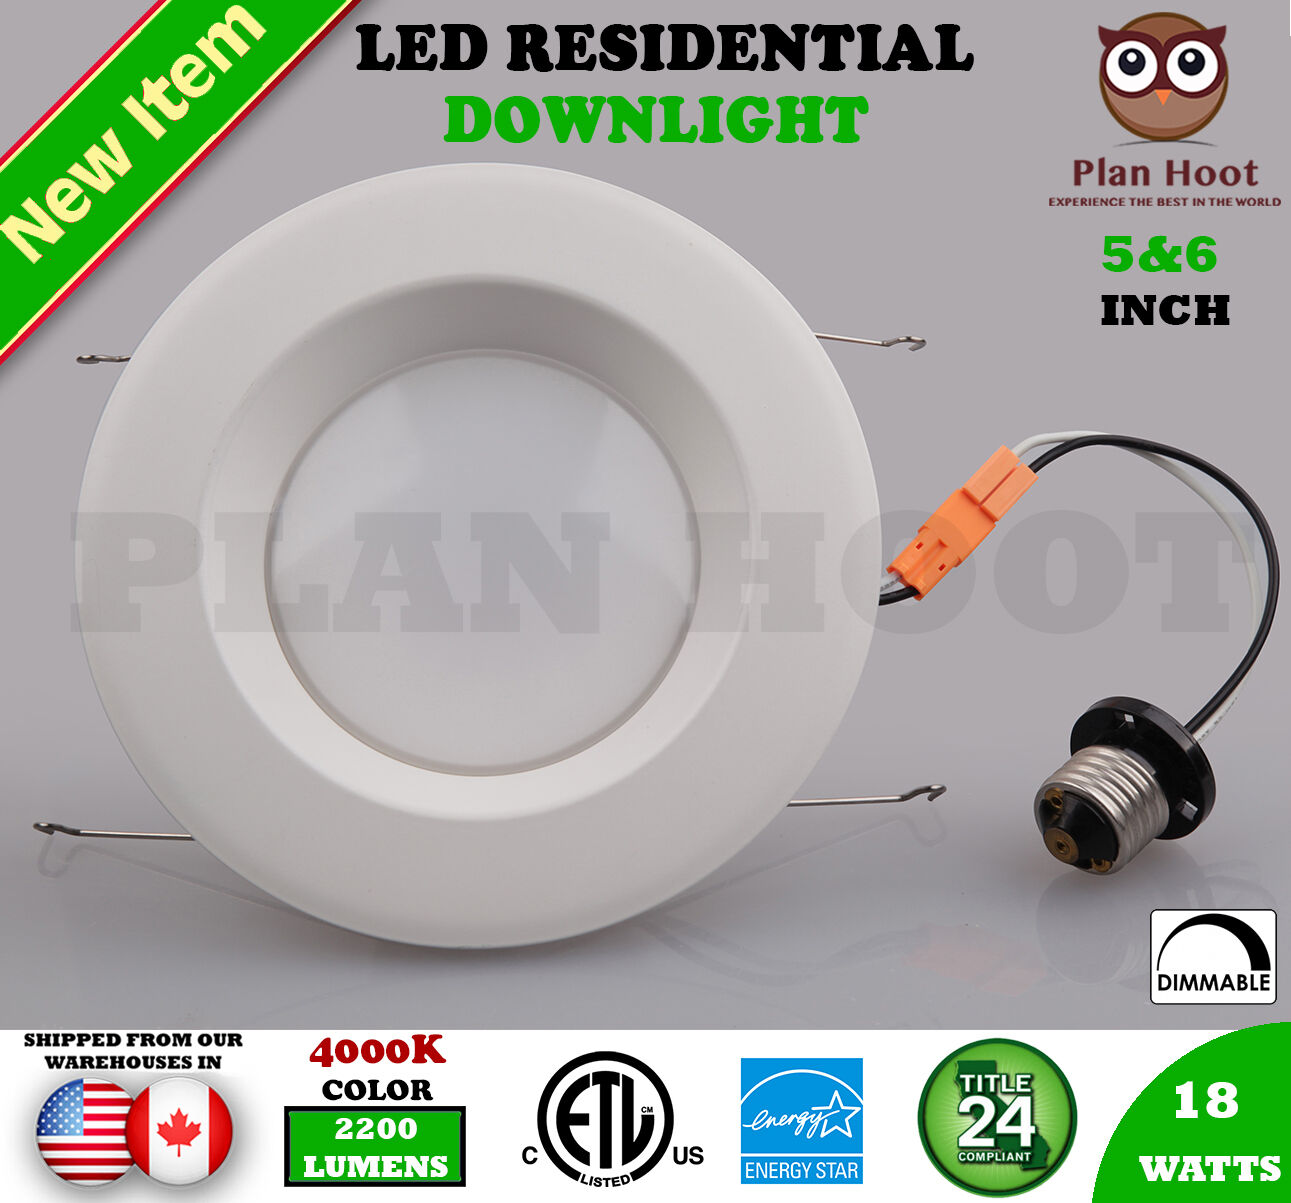 LED DownLight 5 6 Inch 18W 4000K Title24 ES ETL Residential Recessed Fixture